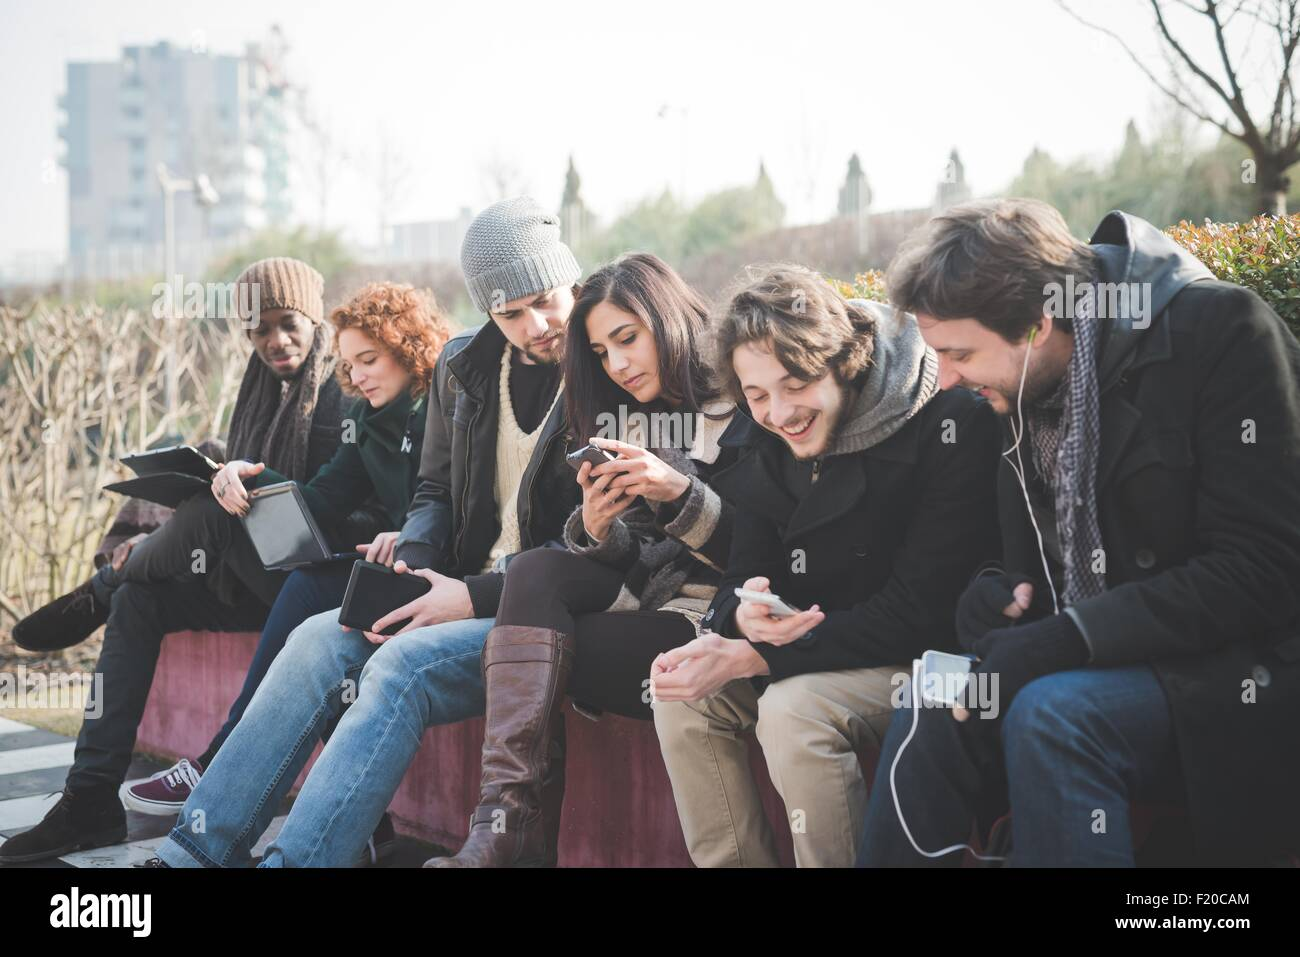 Six young adult friends networking on smartphones and digital tablets in park - Stock Image